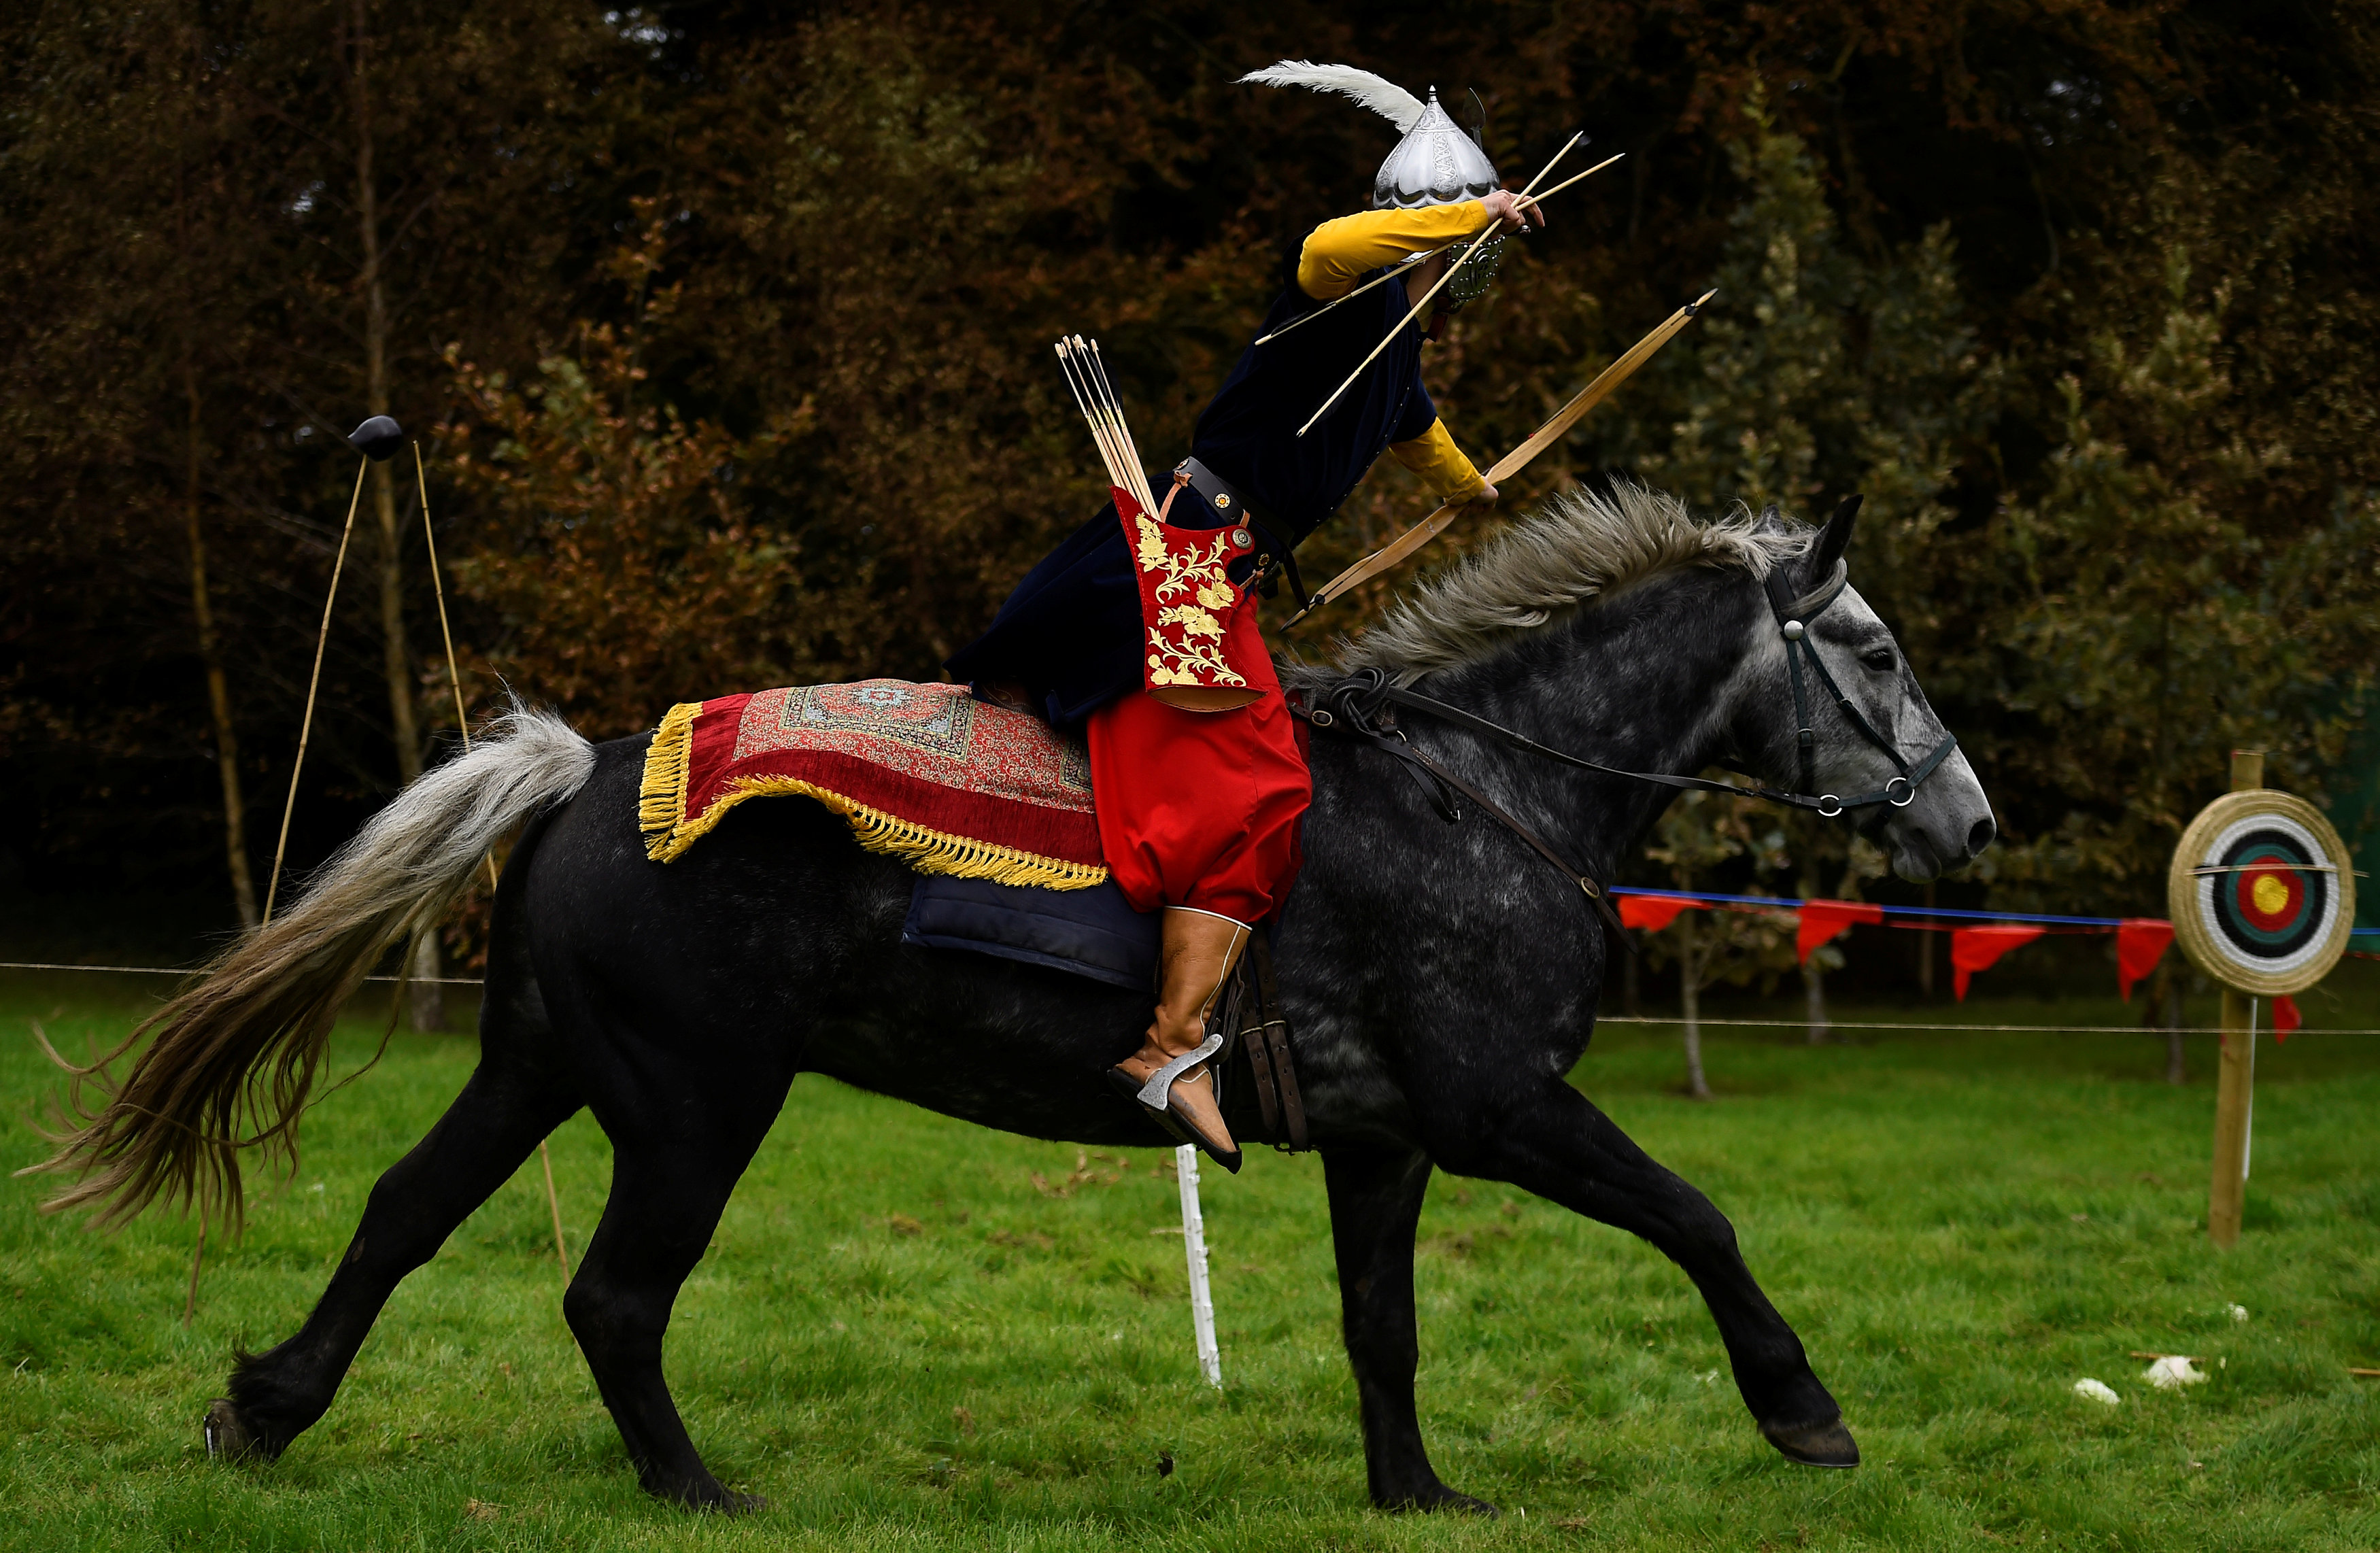 Gokmen Altinkulp dressed as an Ottoman warrior rides horse Bento to demonstrate horseback archery skills during a medieval combat festival at Claregalway castle in Galway